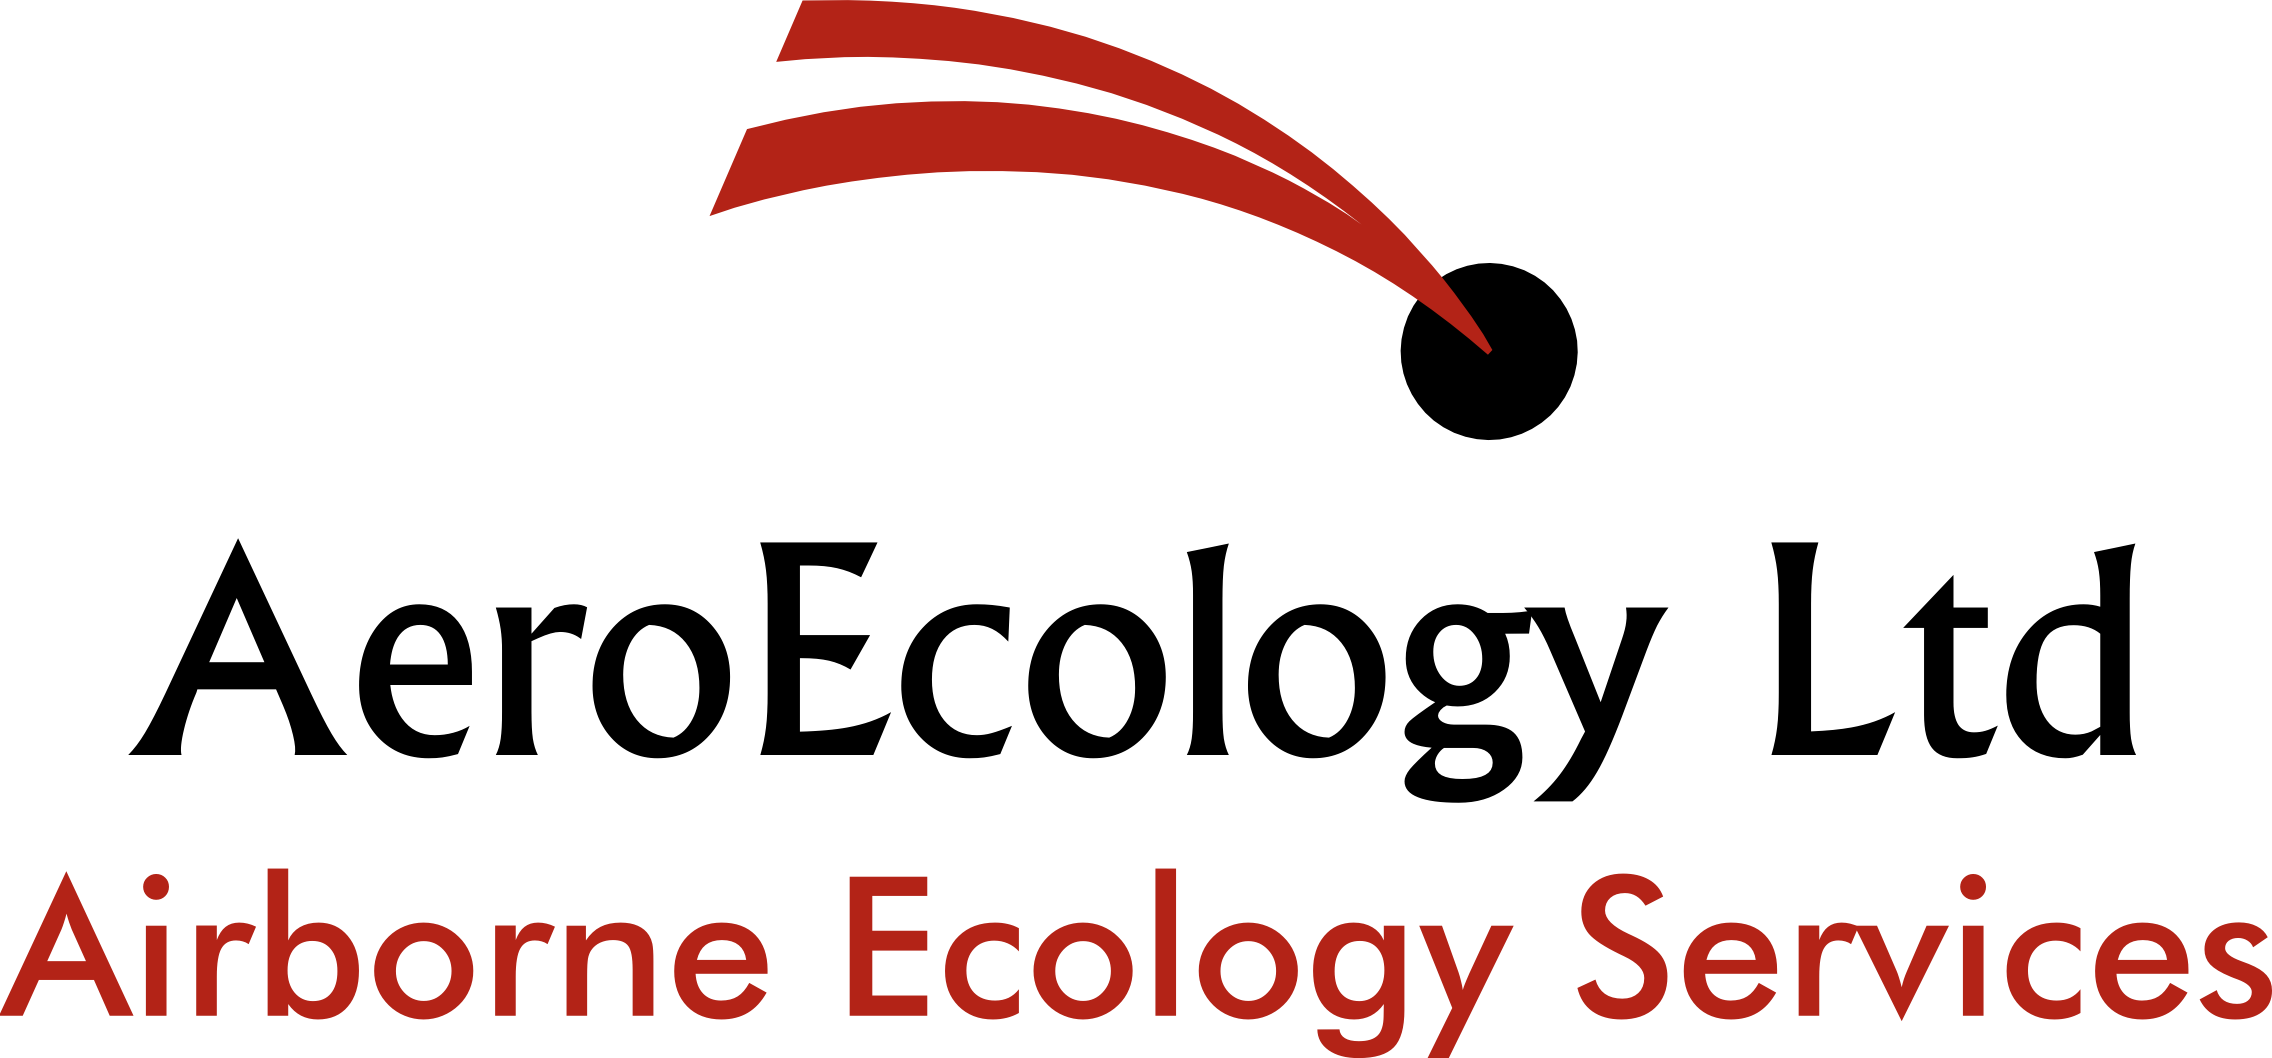 AeroEcology Ltd